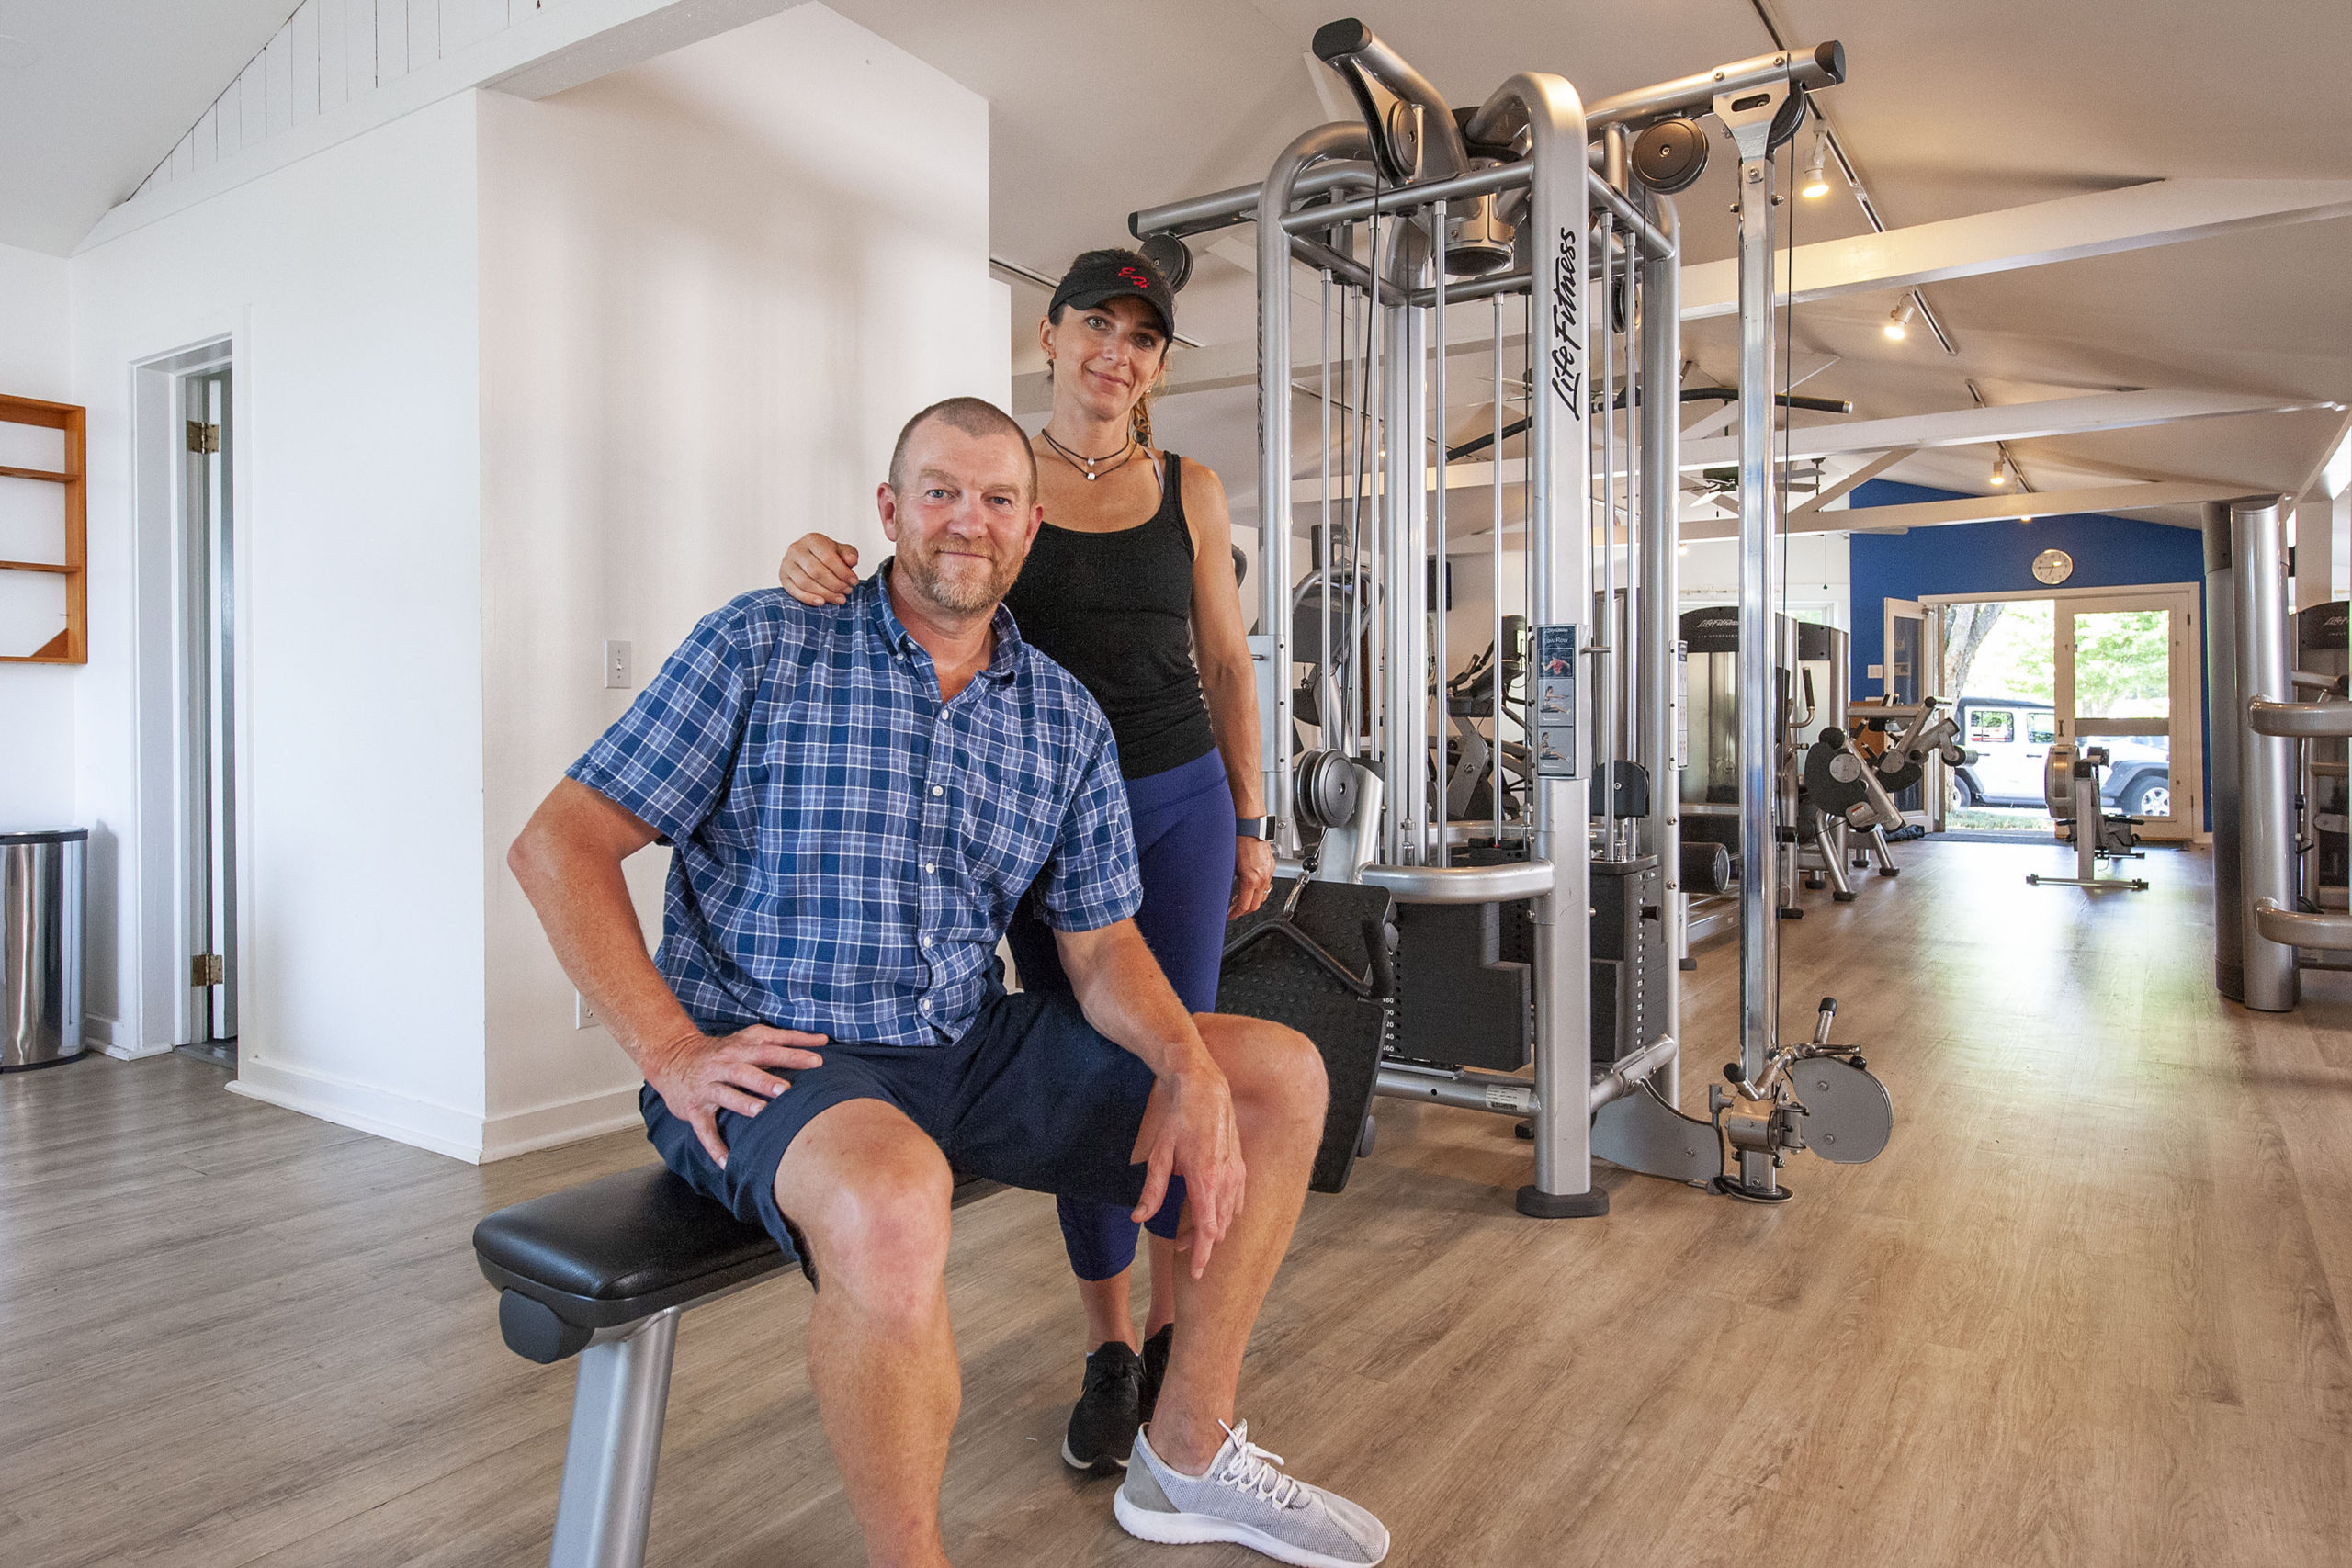 Chris and Elisa Carney have announced that their personal training gym, Railroad Avenue Fitness, will close after 14 years because of the impacts of COVID-19 on the industry.